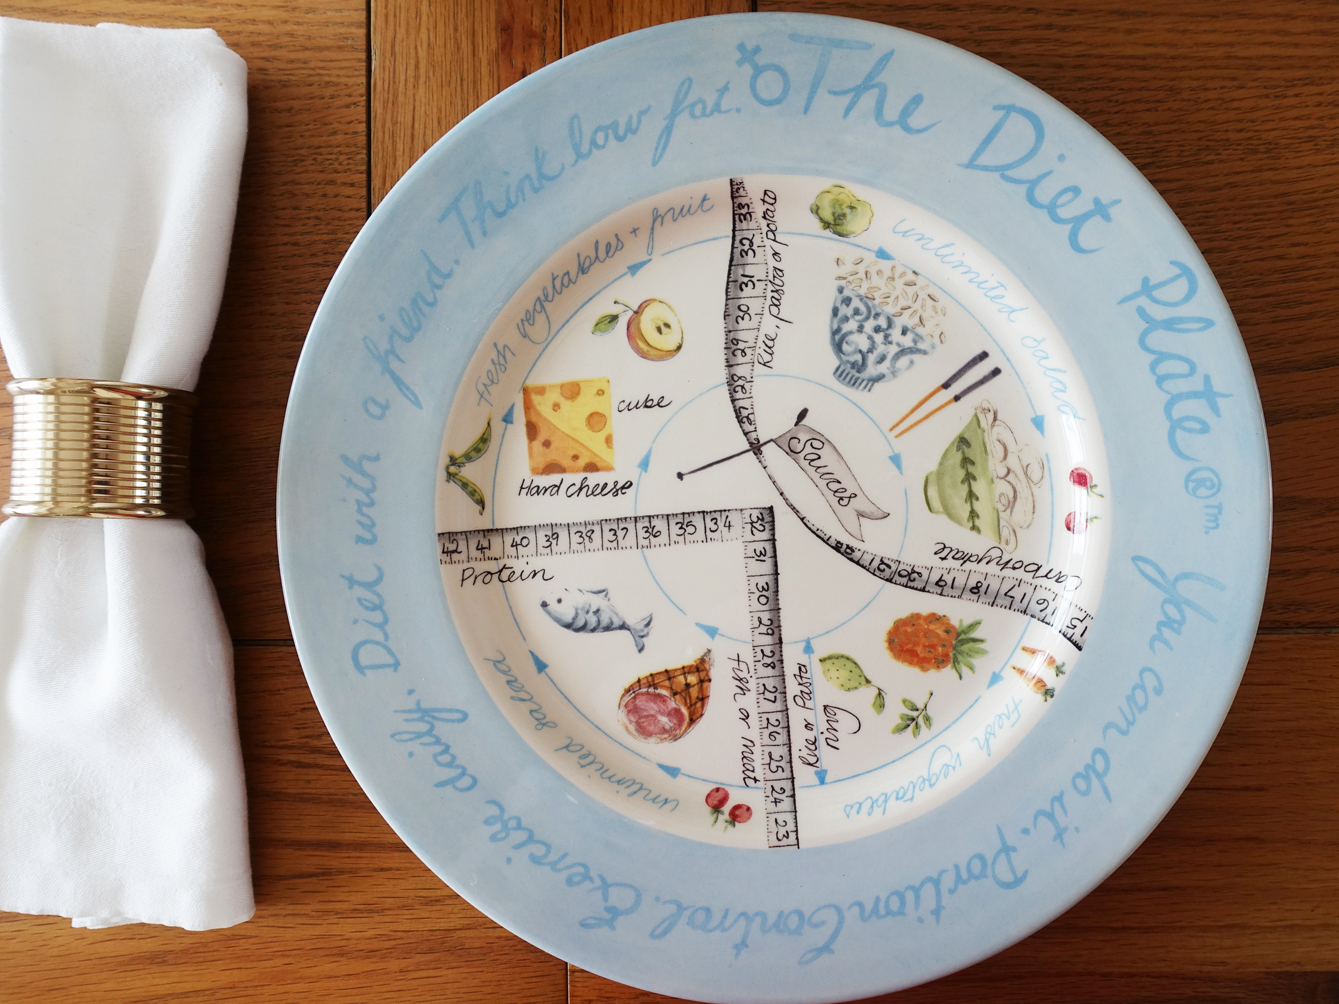 Losing and maintaining weight is all about portion control. The Diet Plate and its new online weight management tool helps you and your family do this in an easy and natural way. Image copyright: Gail Hanlon